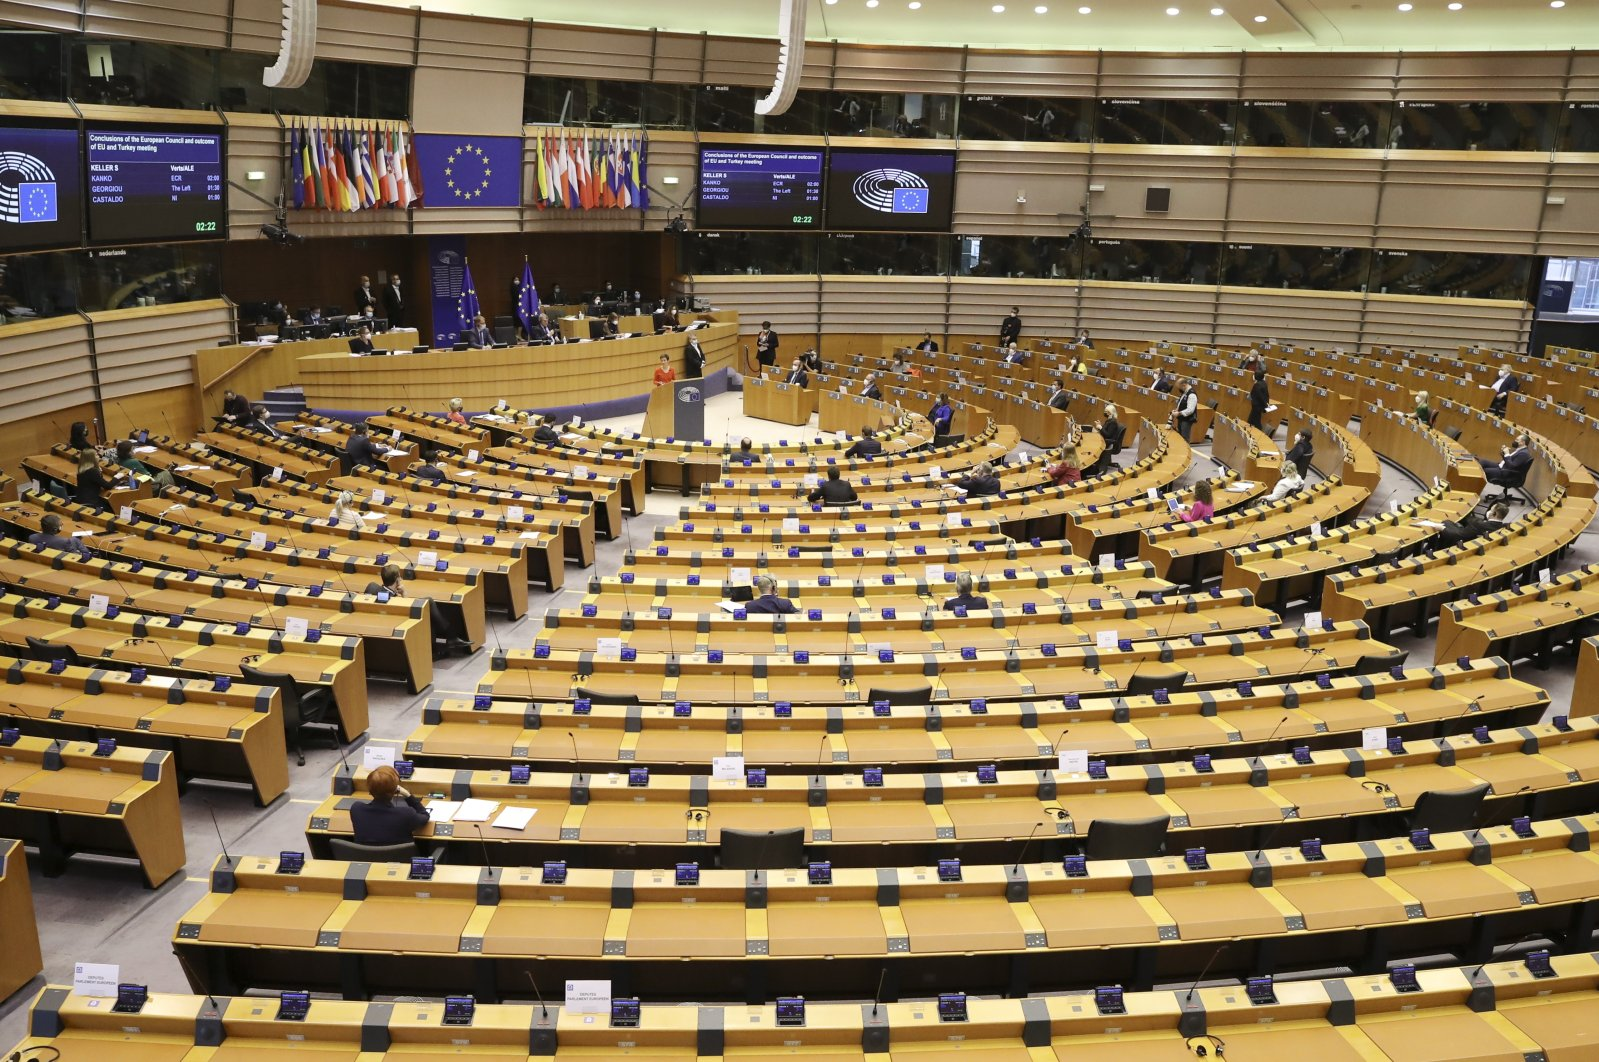 A general view of the European Parliament during the first day of a plenary session in Brussels, Belgium, April 26, 2021. (EPA Photo)